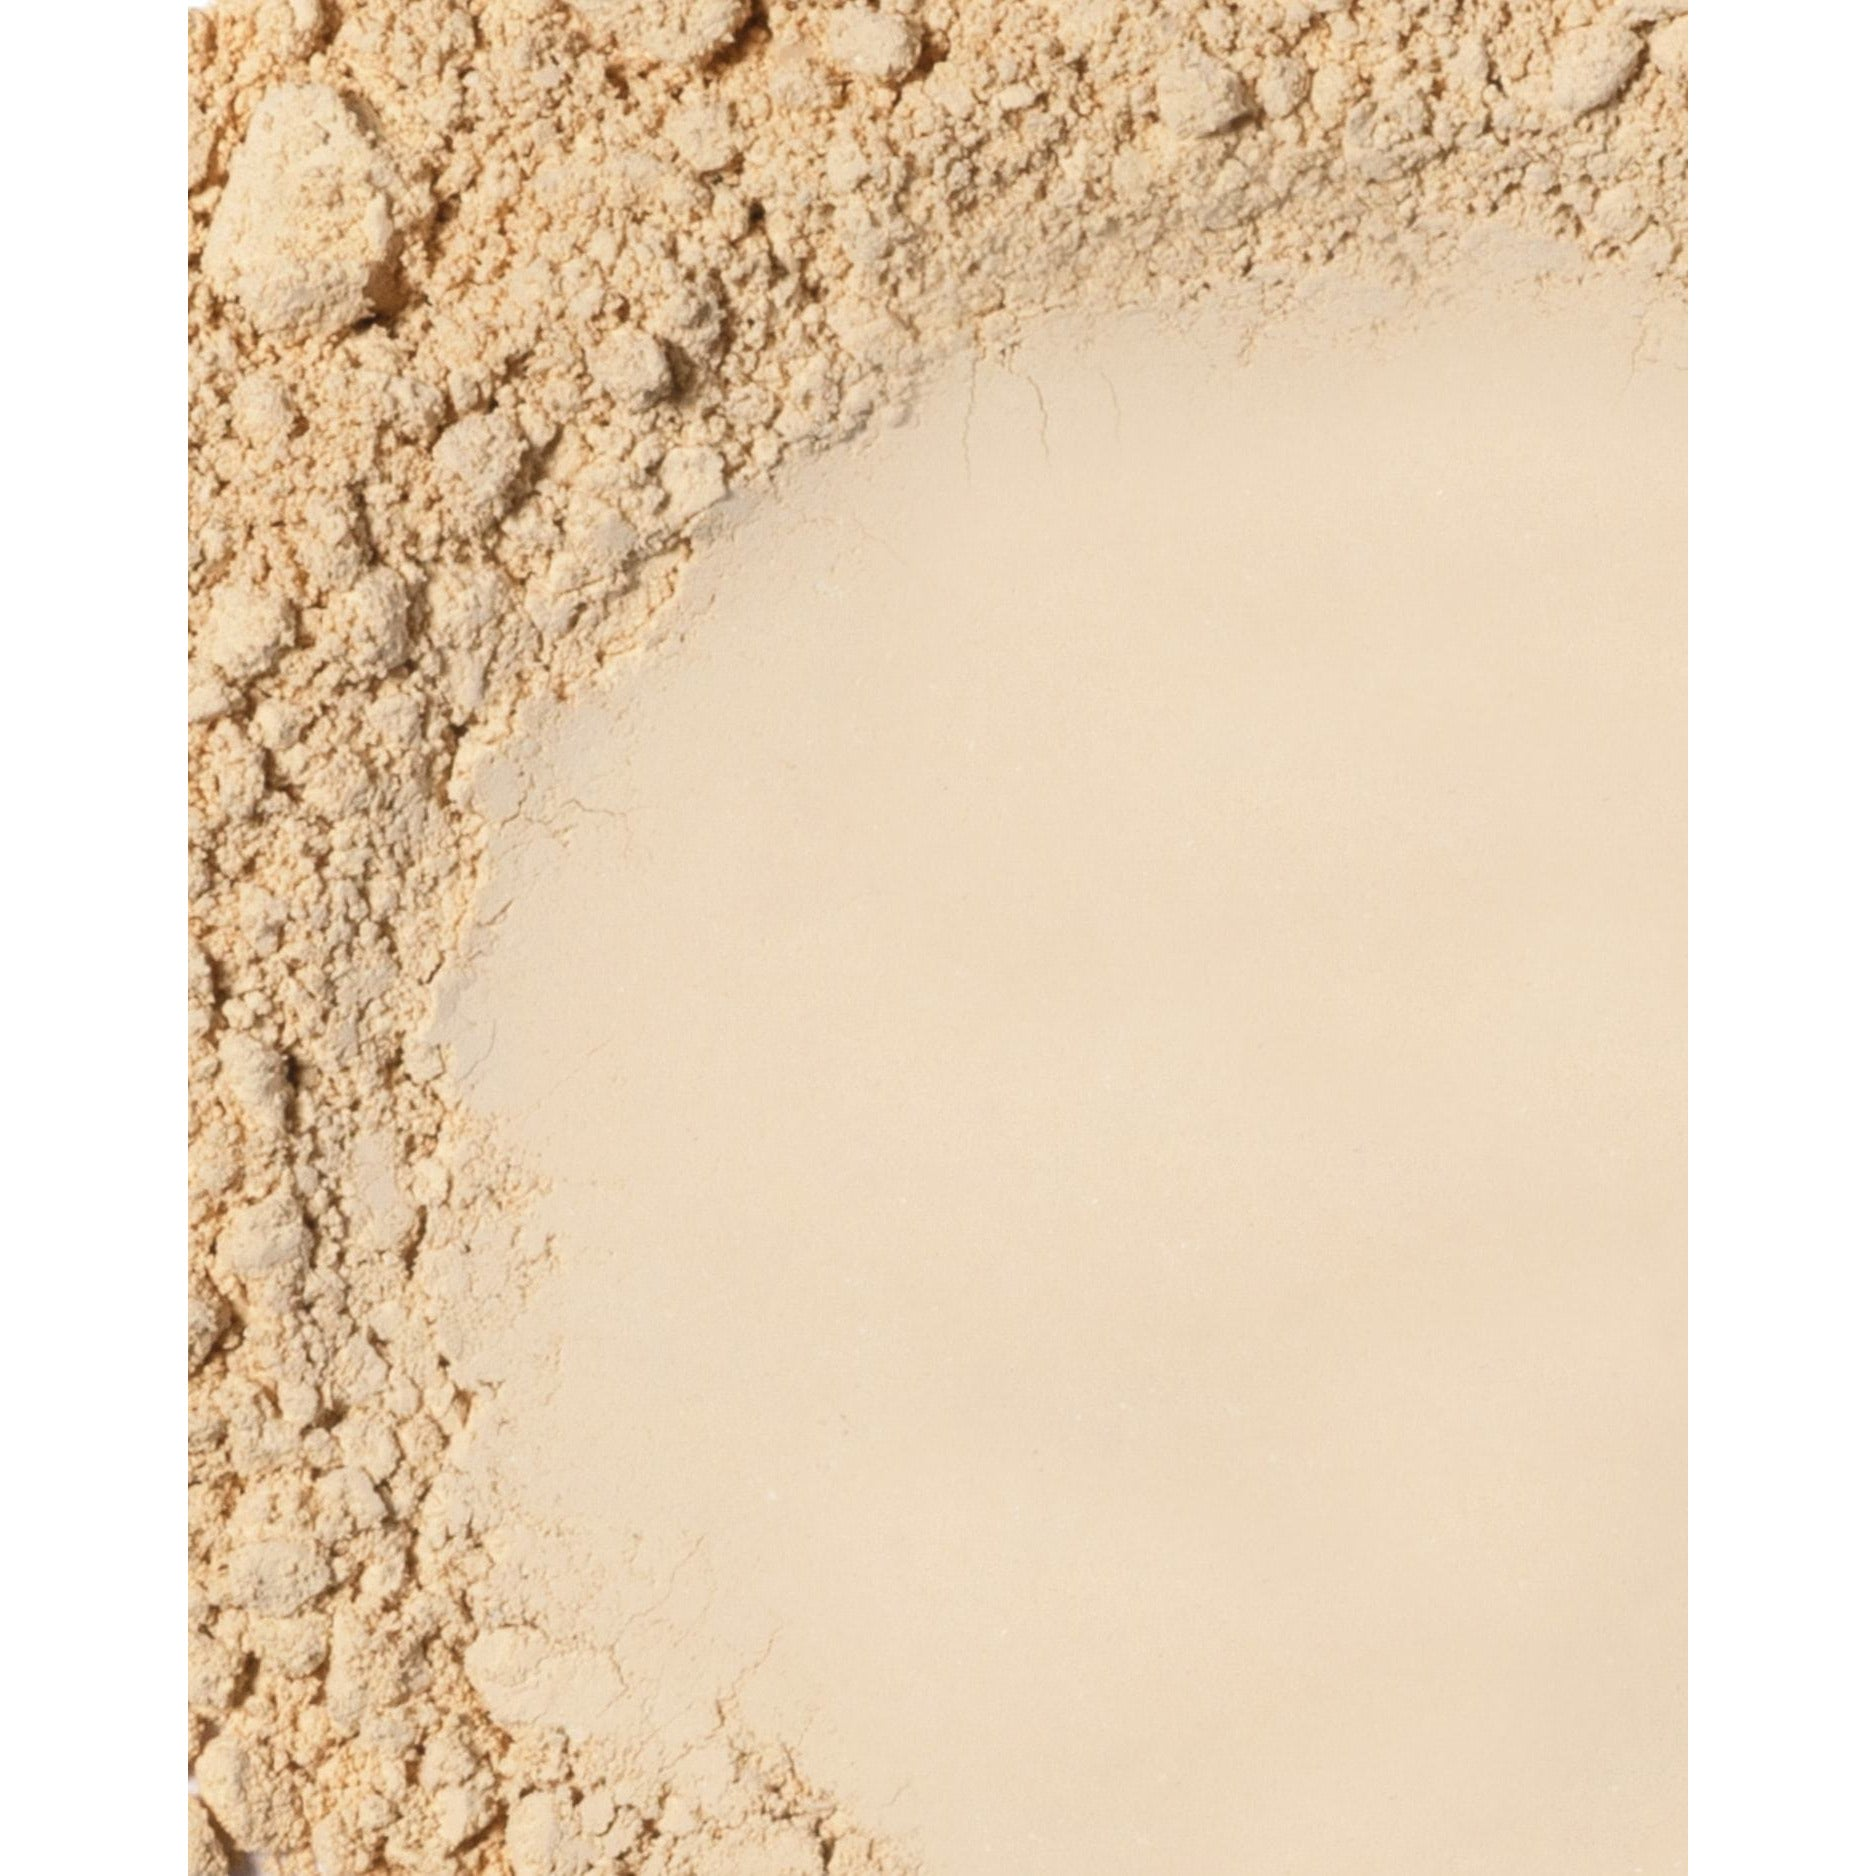 Mighty - Omiana Loose Powder Mineral Foundation No Titanium Dioxide and No Mica